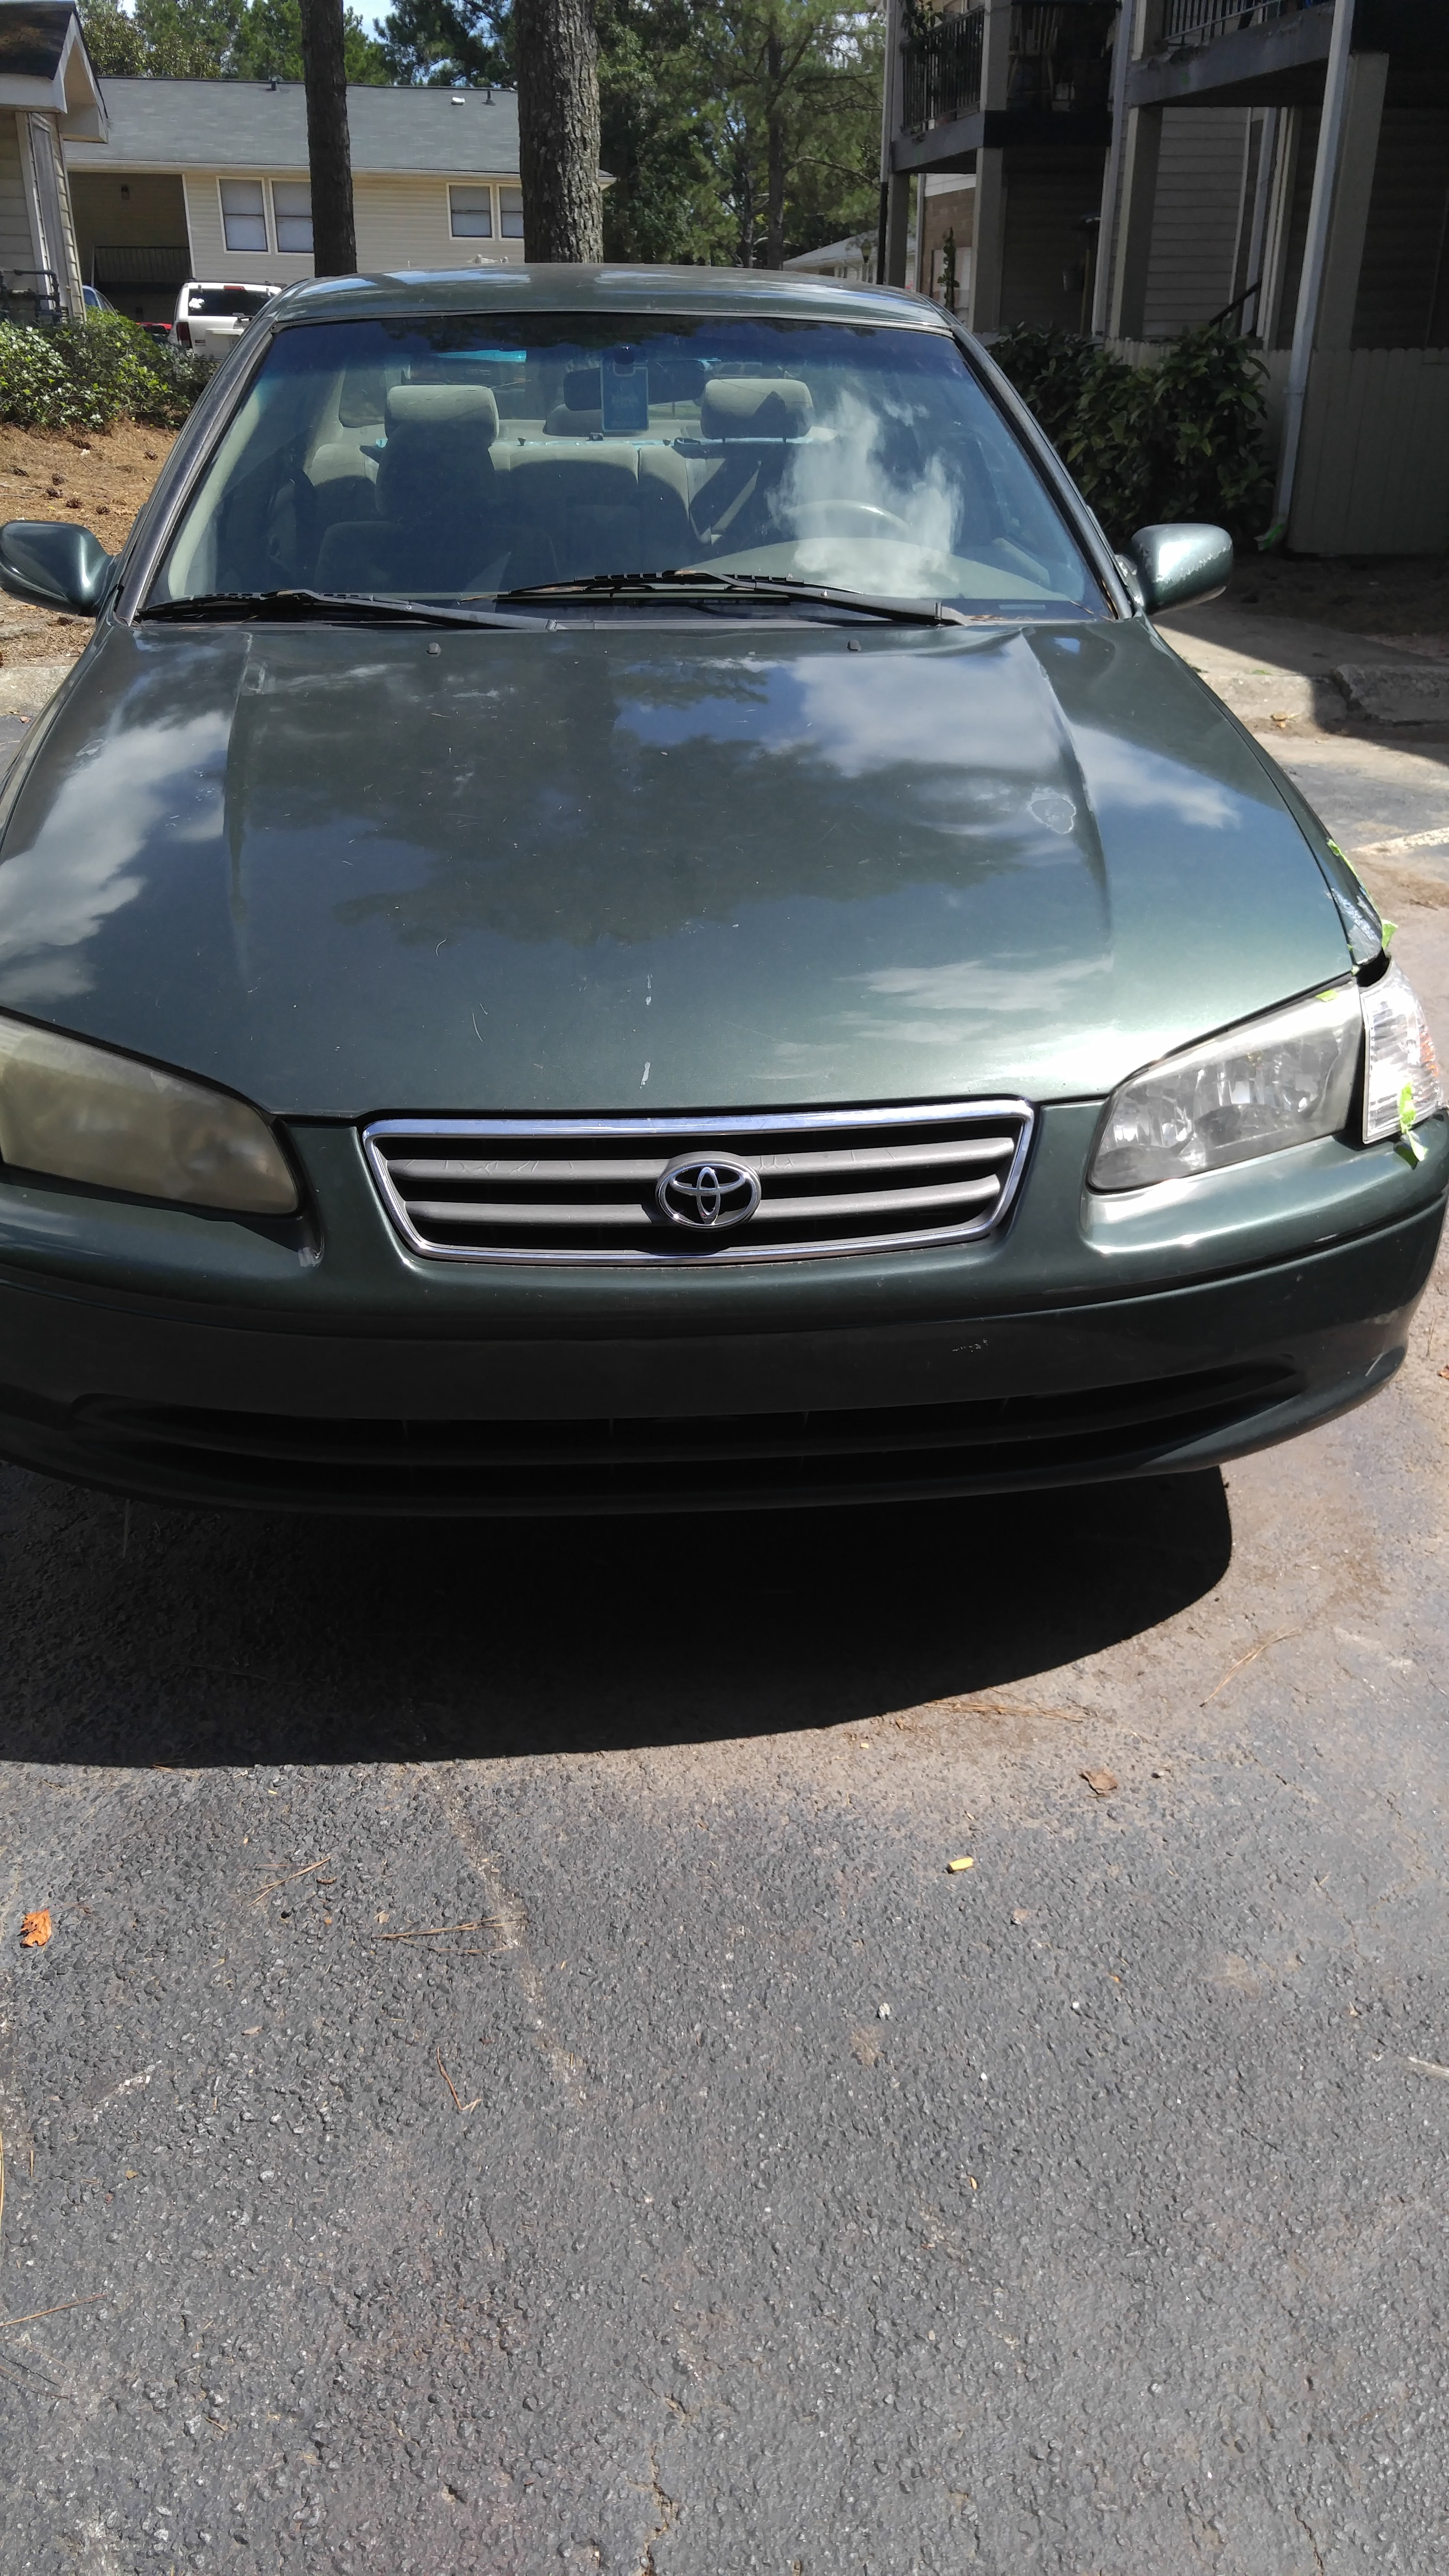 Junk 2000 Toyota Camry in Norcross